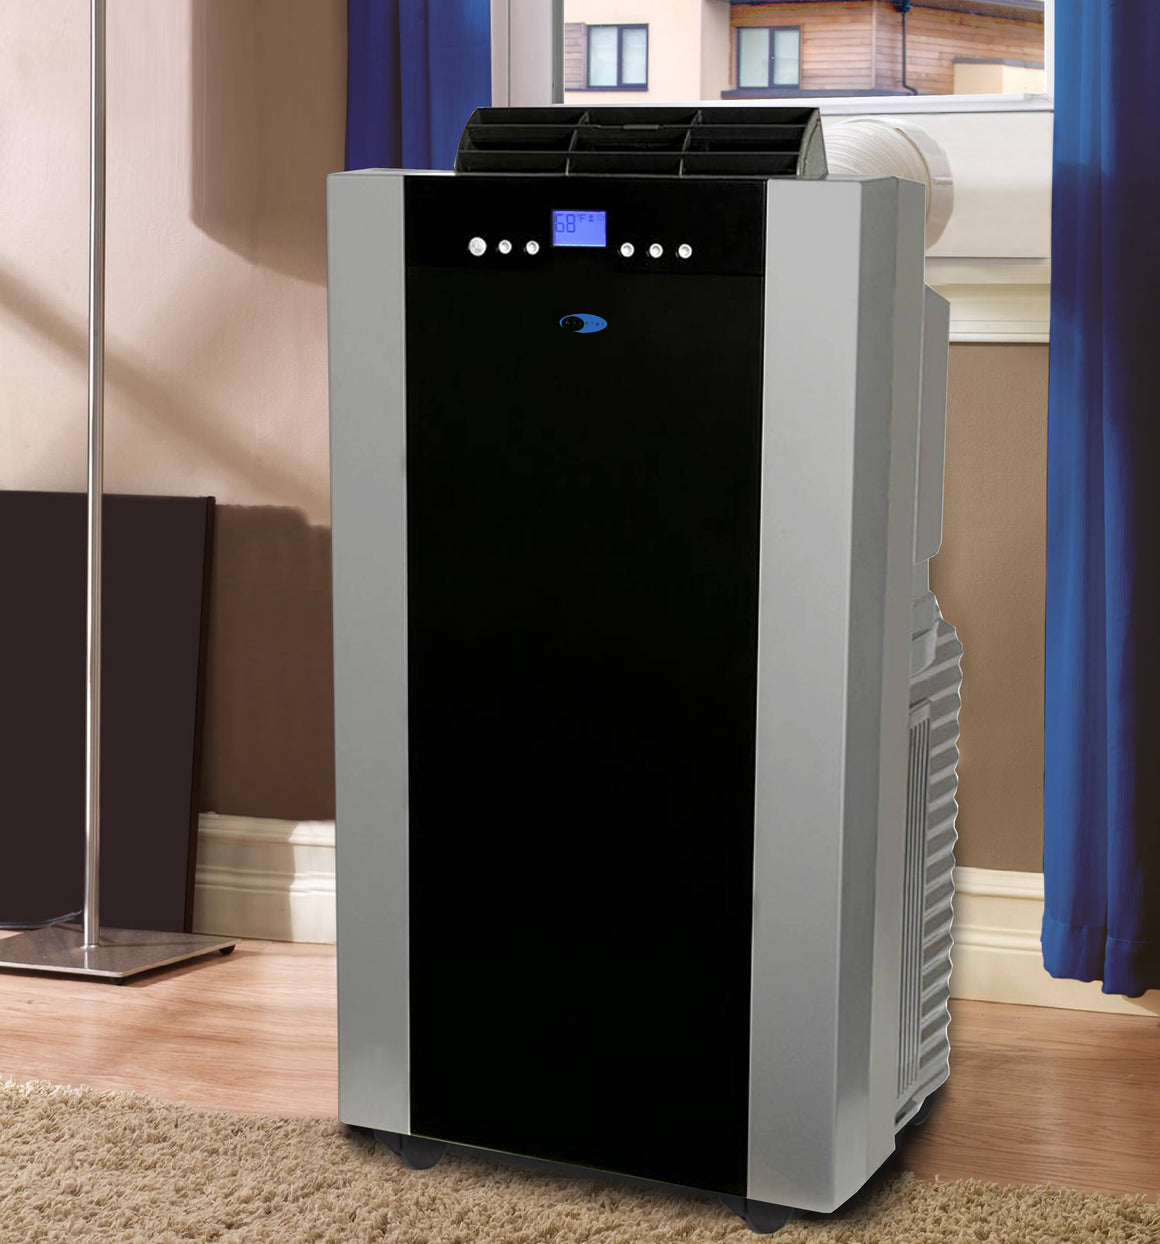 Whynter Eco-friendly 14000 BTU Dual Hose Portable Air Conditioner with Heater - ARC-14SH - Wine Cooler City